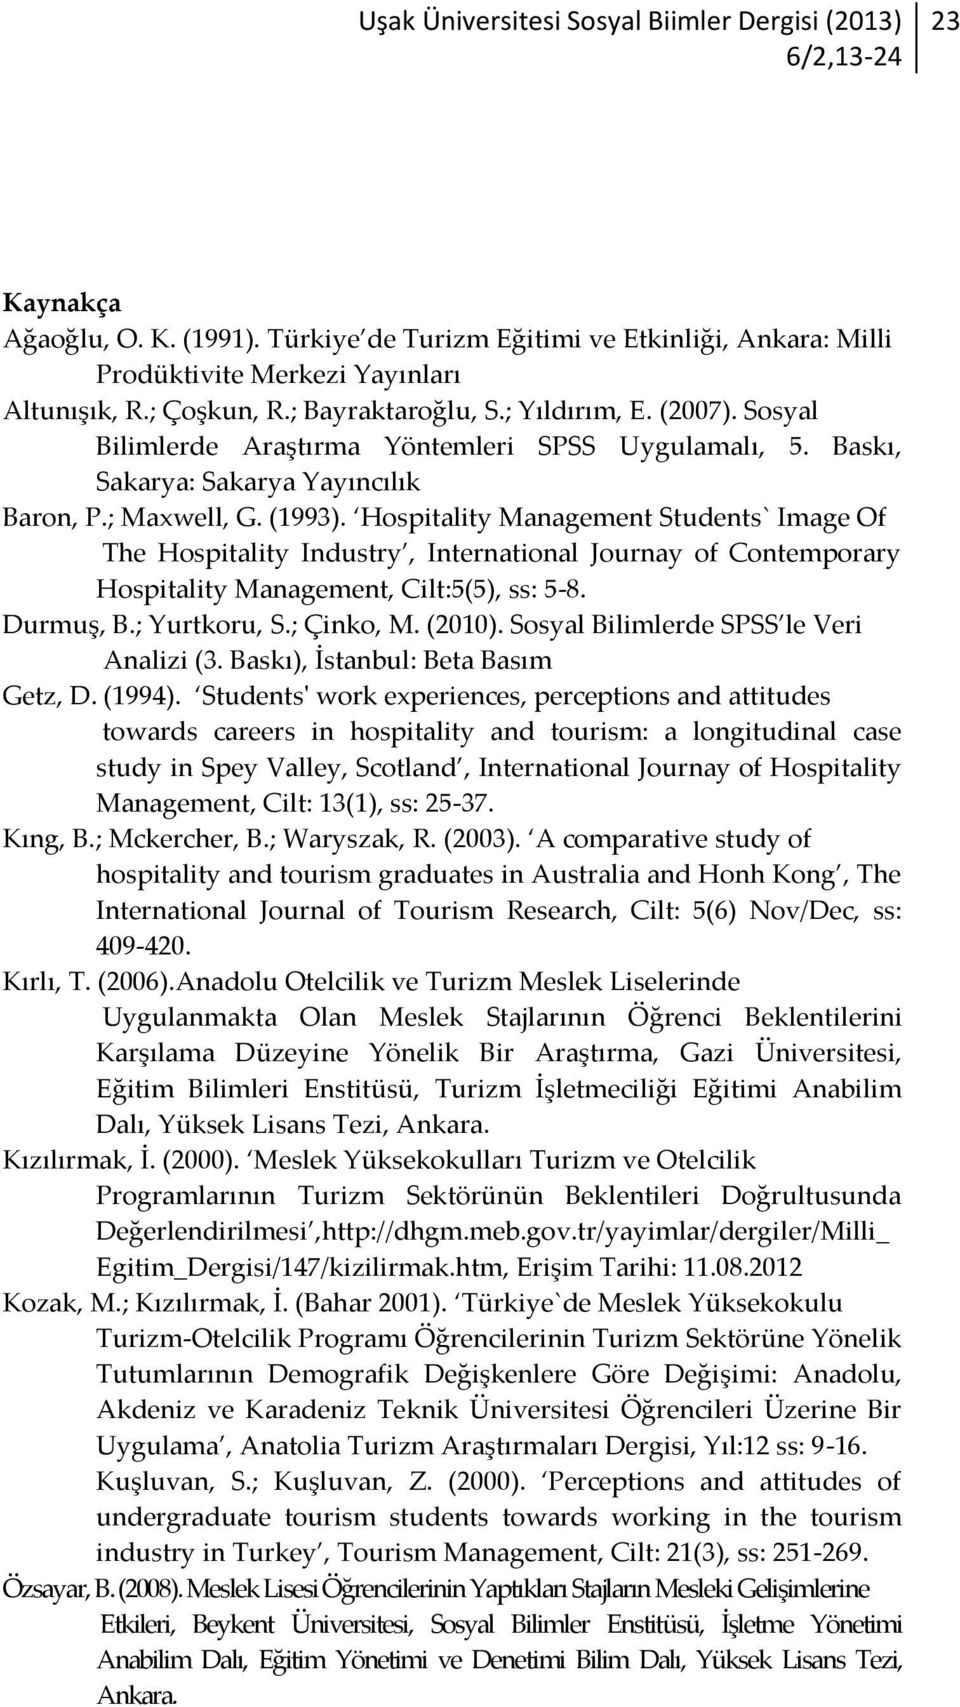 Hospitality Management Students` Image Of The Hospitality Industry, International Journay of Contemporary Hospitality Management, Cilt:5(5), ss: 5-8. Durmuş, B.; Yurtkoru, S.; Çinko, M. (2010).